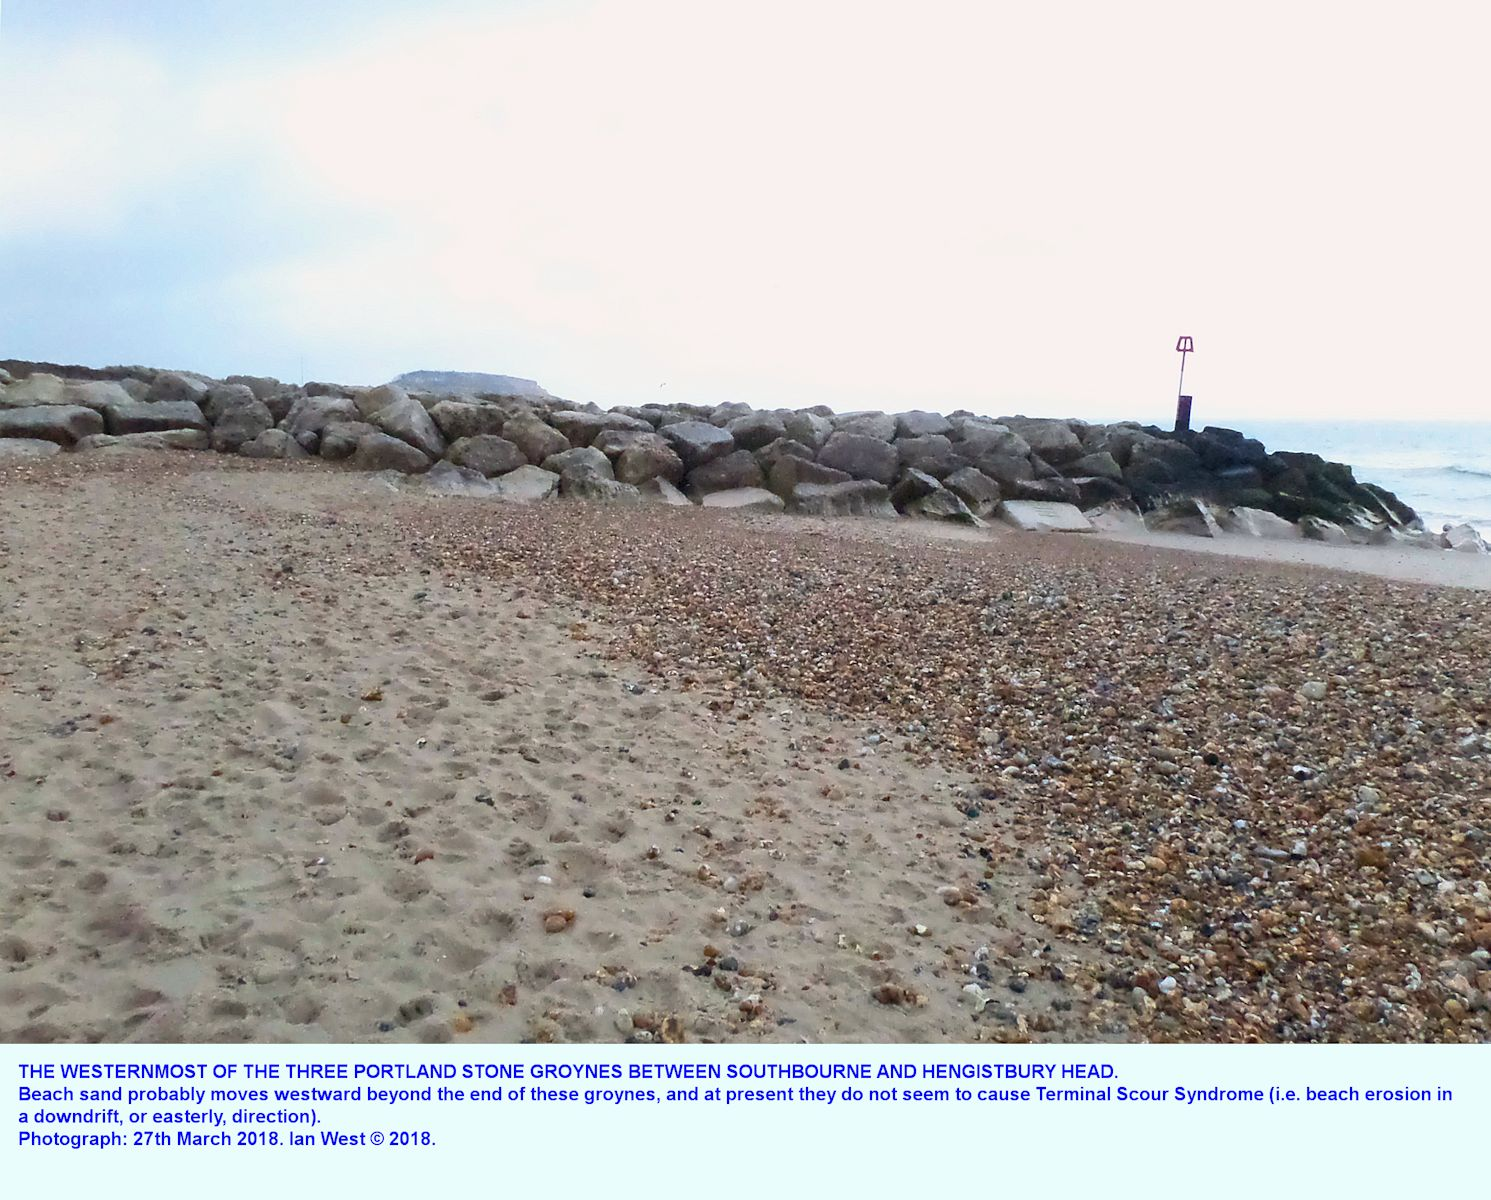 A general view from the beach of the westernmost of the three groynes of Portland Stone blocks between Southbourne and Hengistbury Head, seen from the mid beach, looking eastward